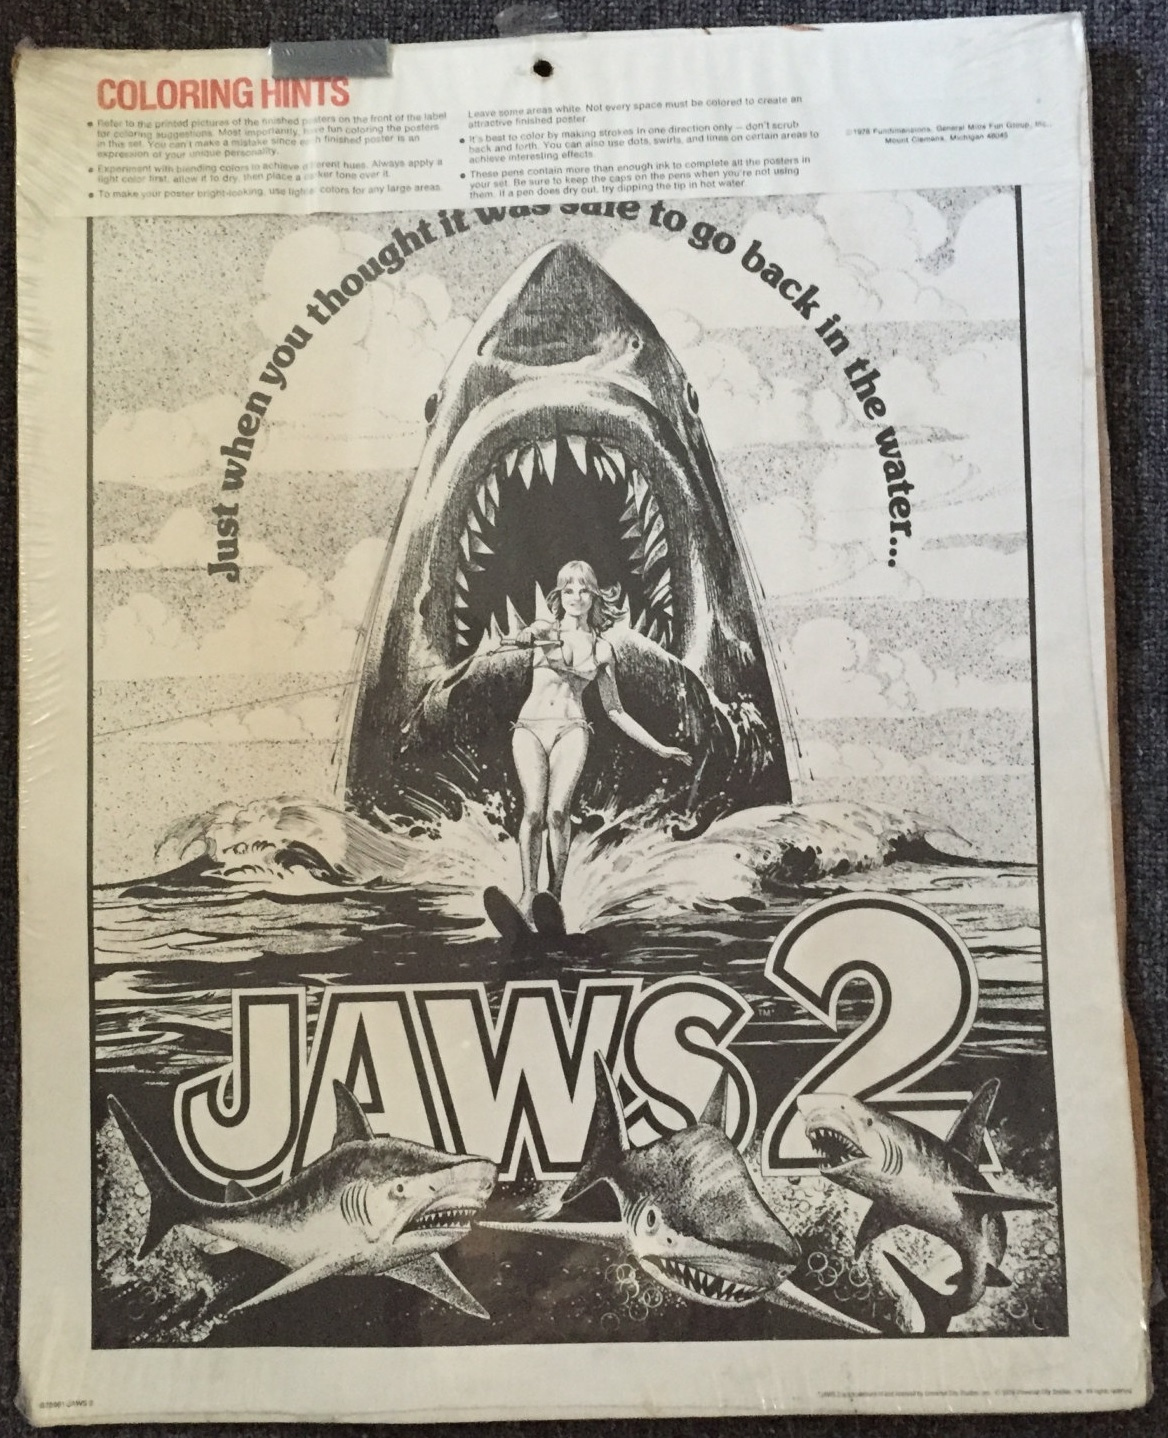 Jaws 2 Poster Art (Craft Master, 1978) | 2 Warps to Neptune